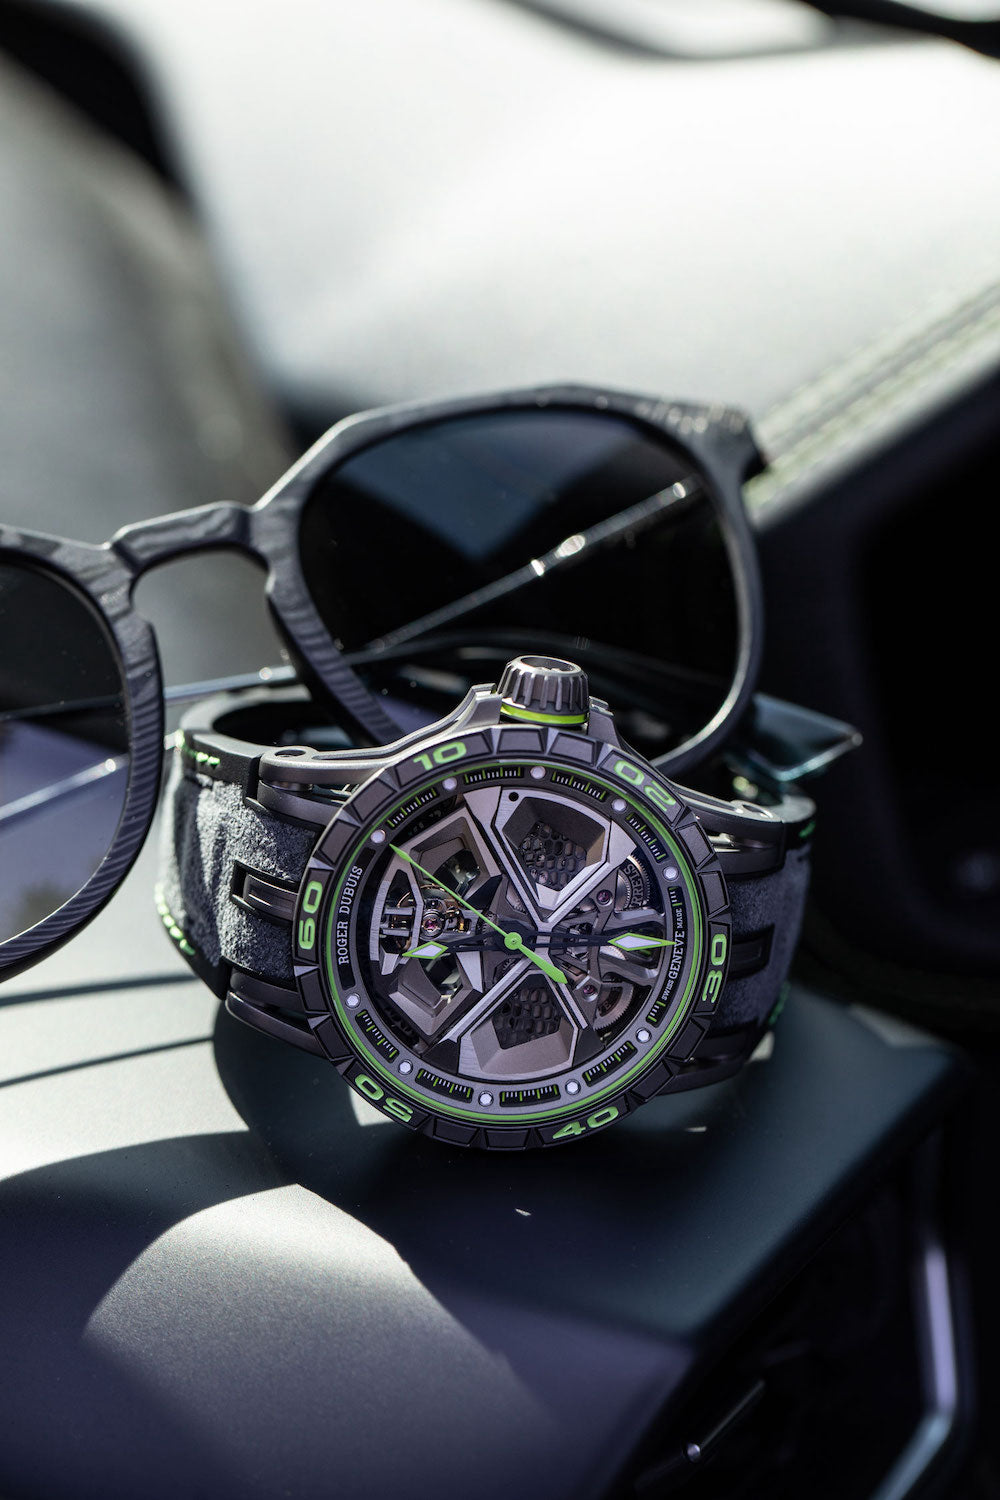 Roger Dubuis excalibur spider photoshoot with Roveri Eyewear CLM7 Claseri Michele